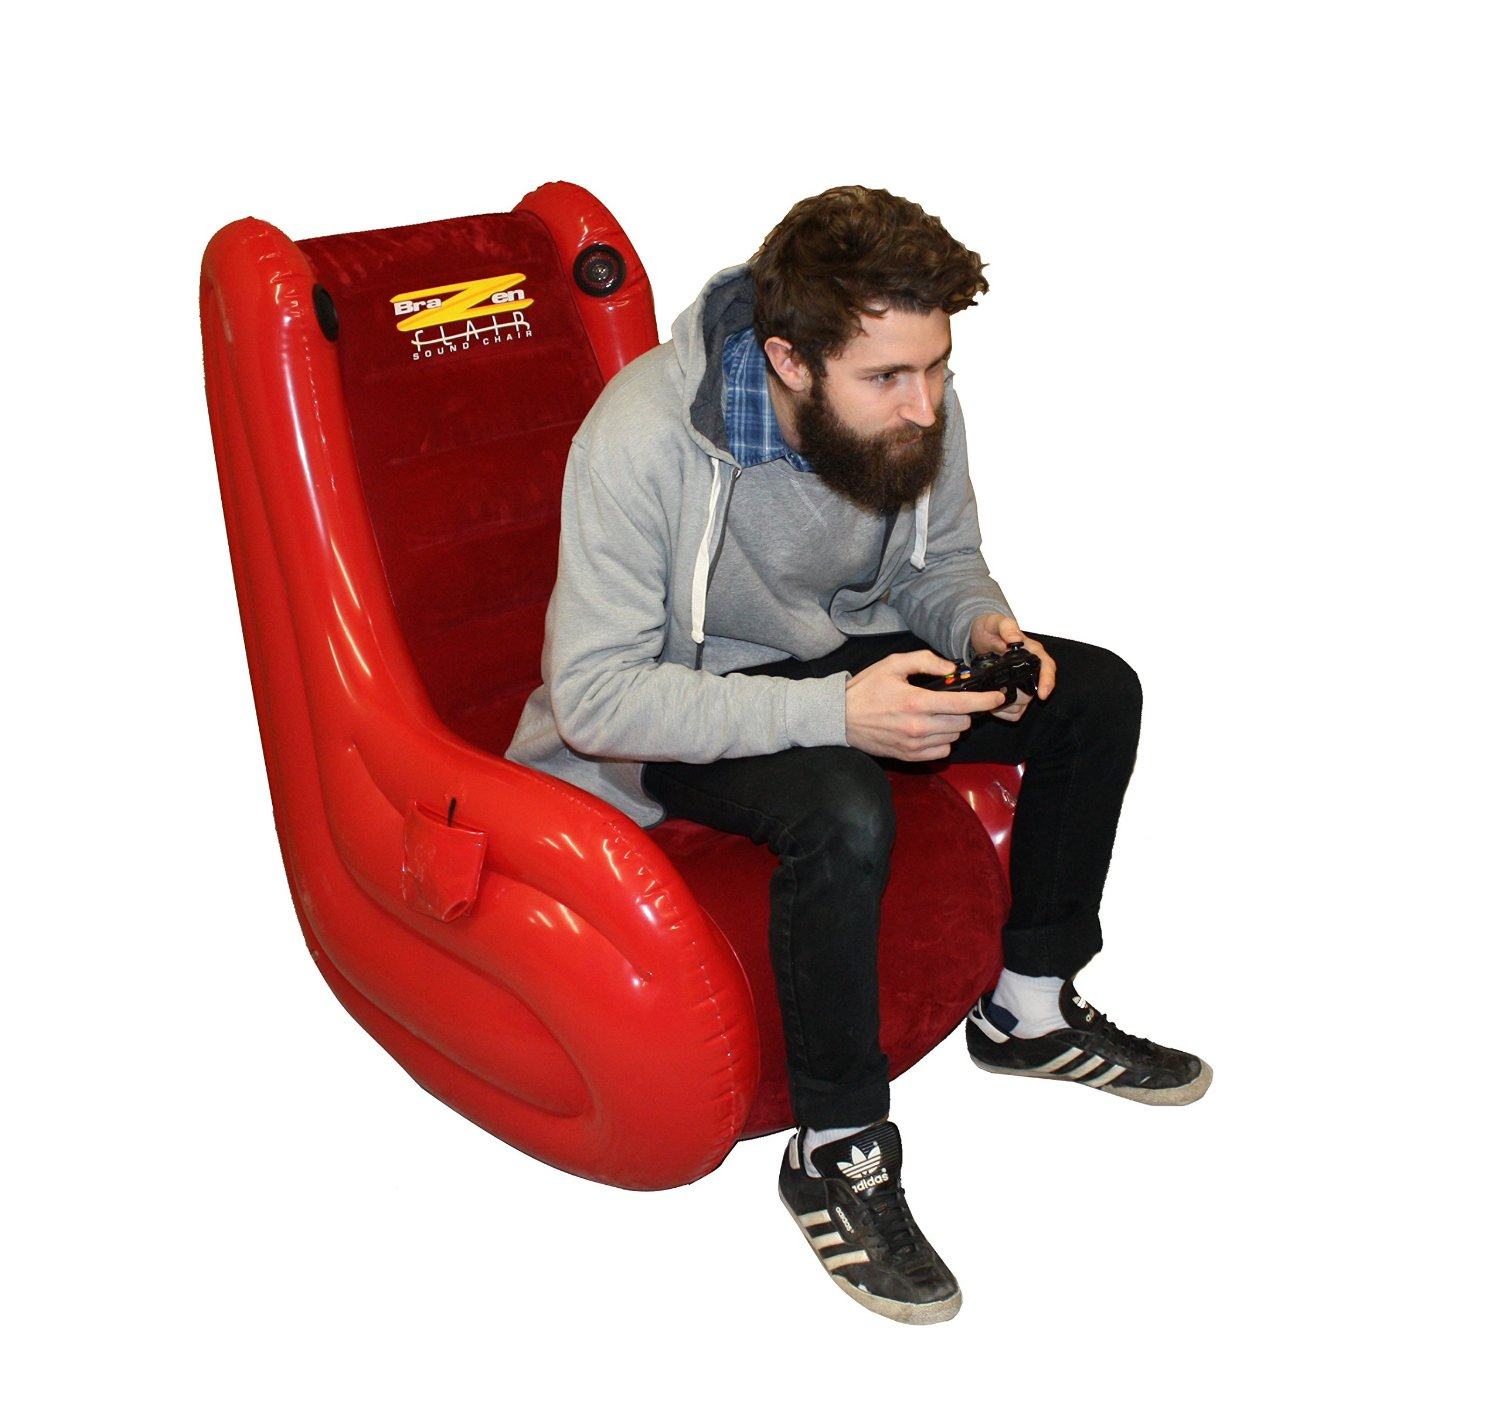 gaming chair reviews 2016 uk chairs for kids brazen flair inflatable 2 surround sound adult